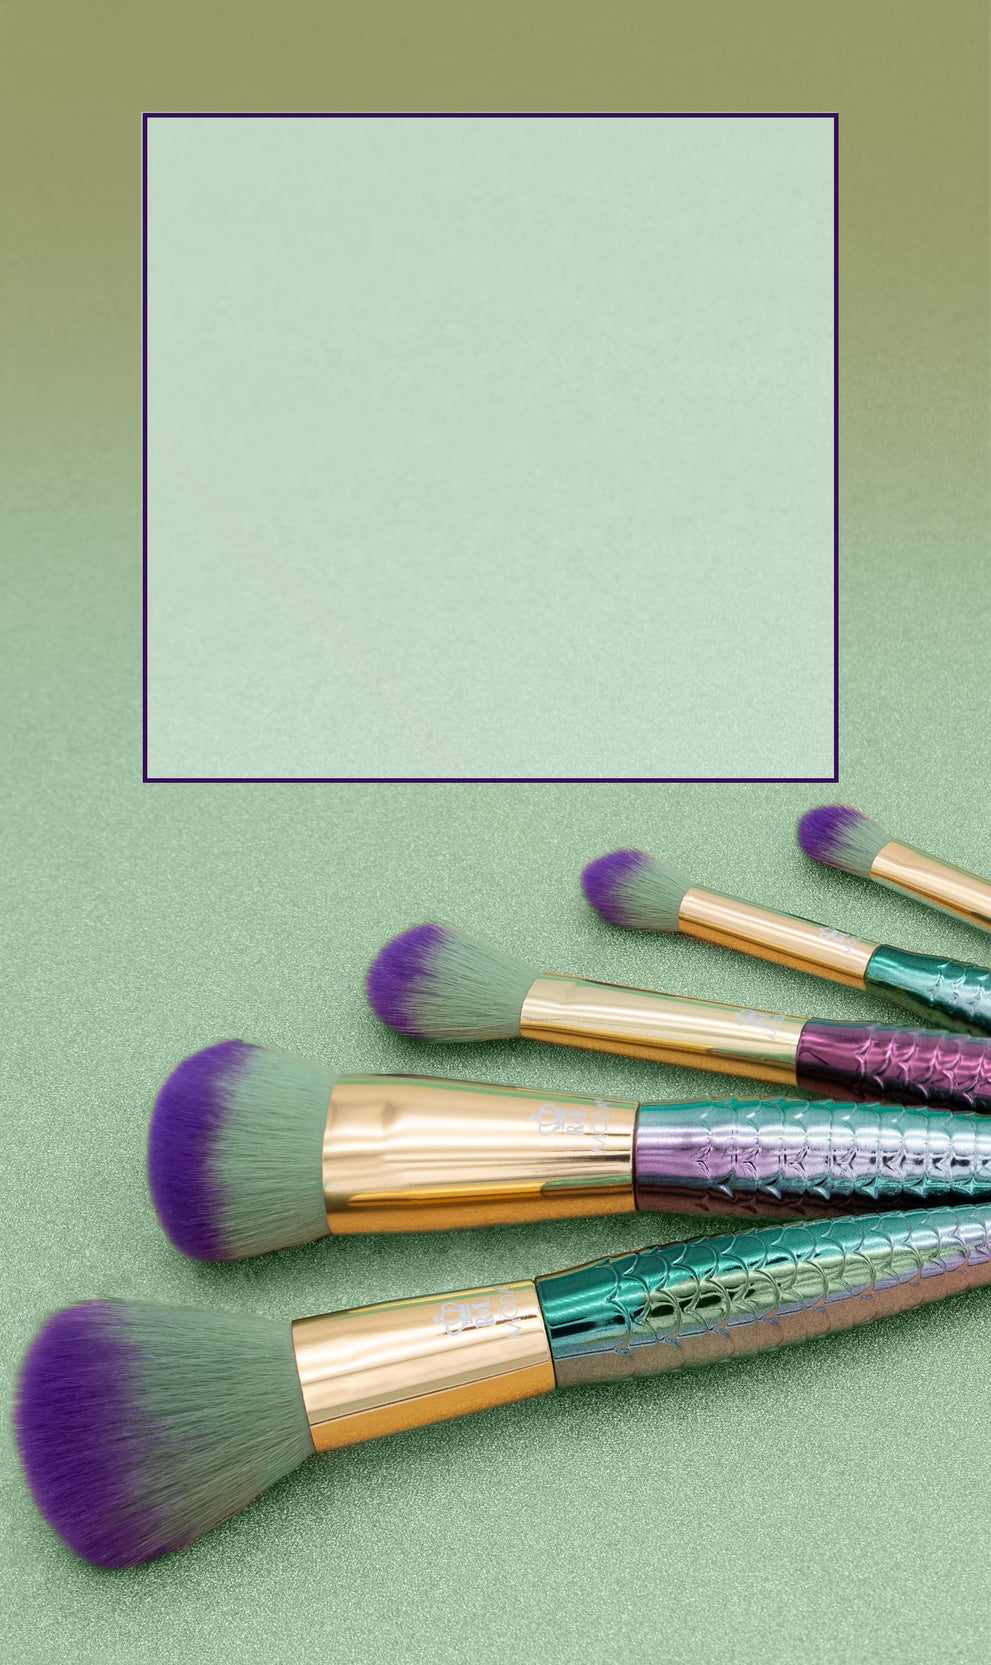 MŌDA® Mythical Professional Makeup Brushes